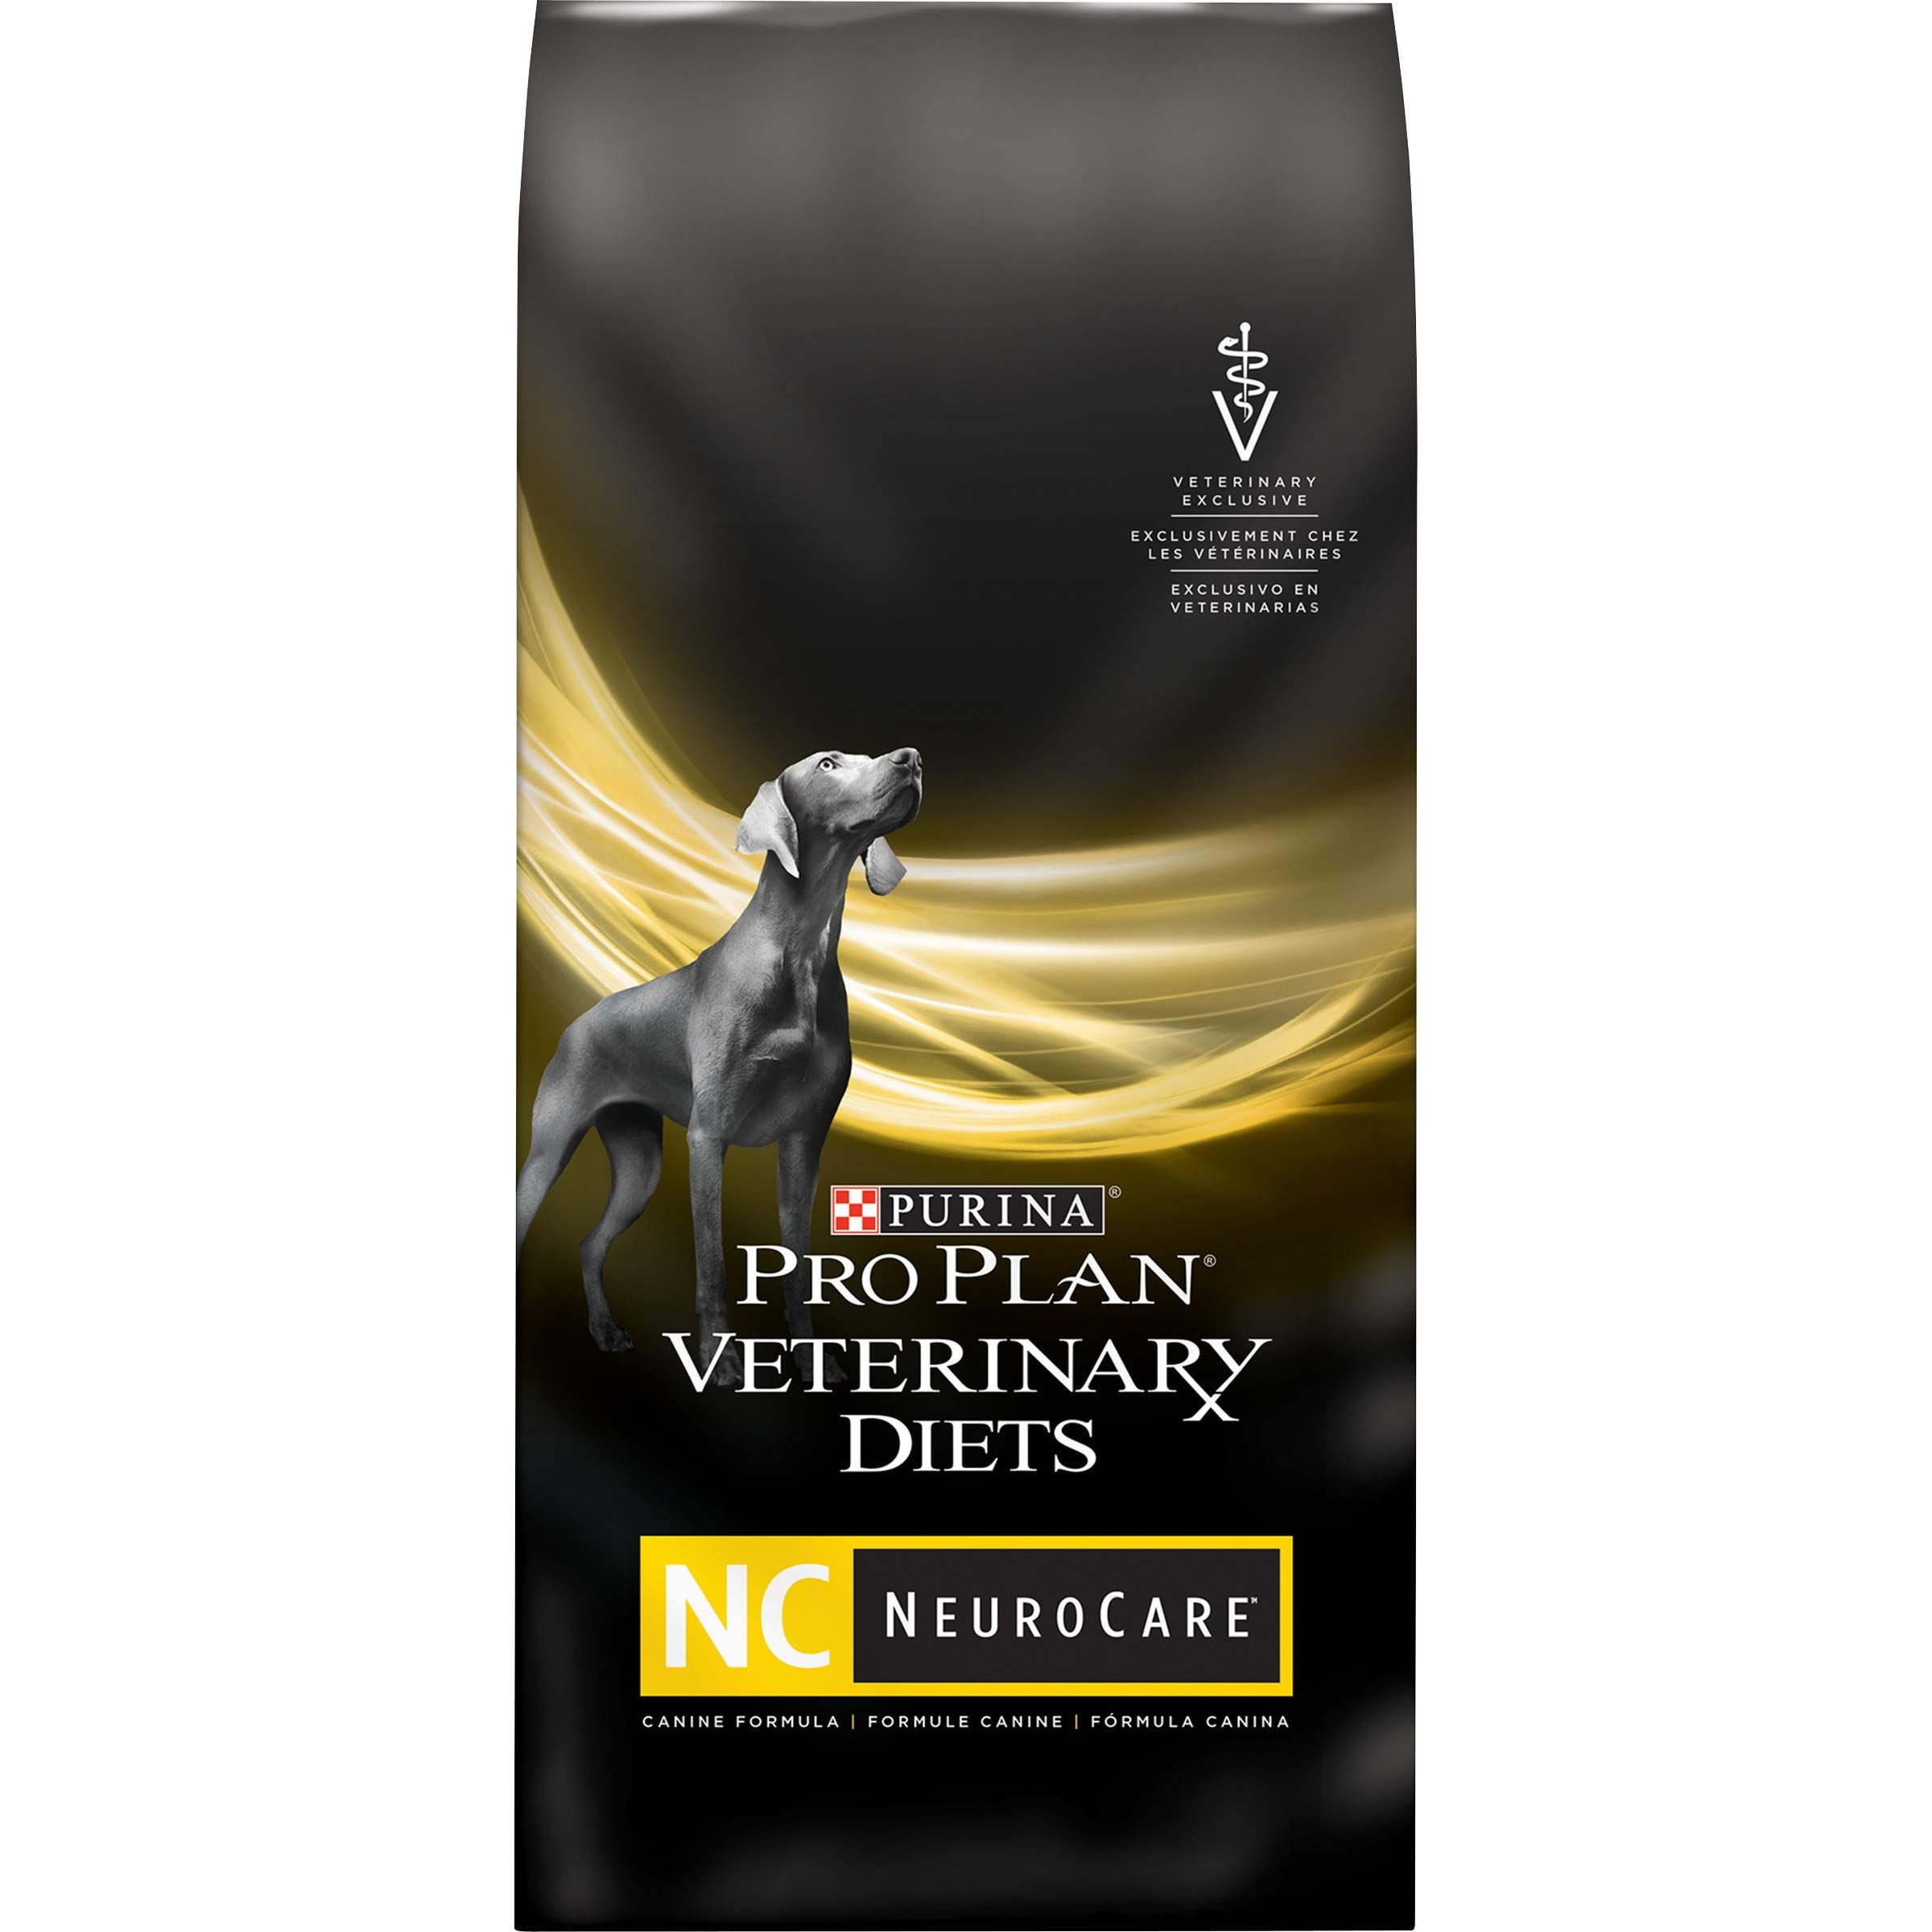 Purina Pro Plan Veterinary Diets Nc Neurocare Canine Formula Dry Dog Food 11 Lb Bag You Can Get Additional In 2020 Dry Dog Food Dog Food Recipes Purina Pro Plan